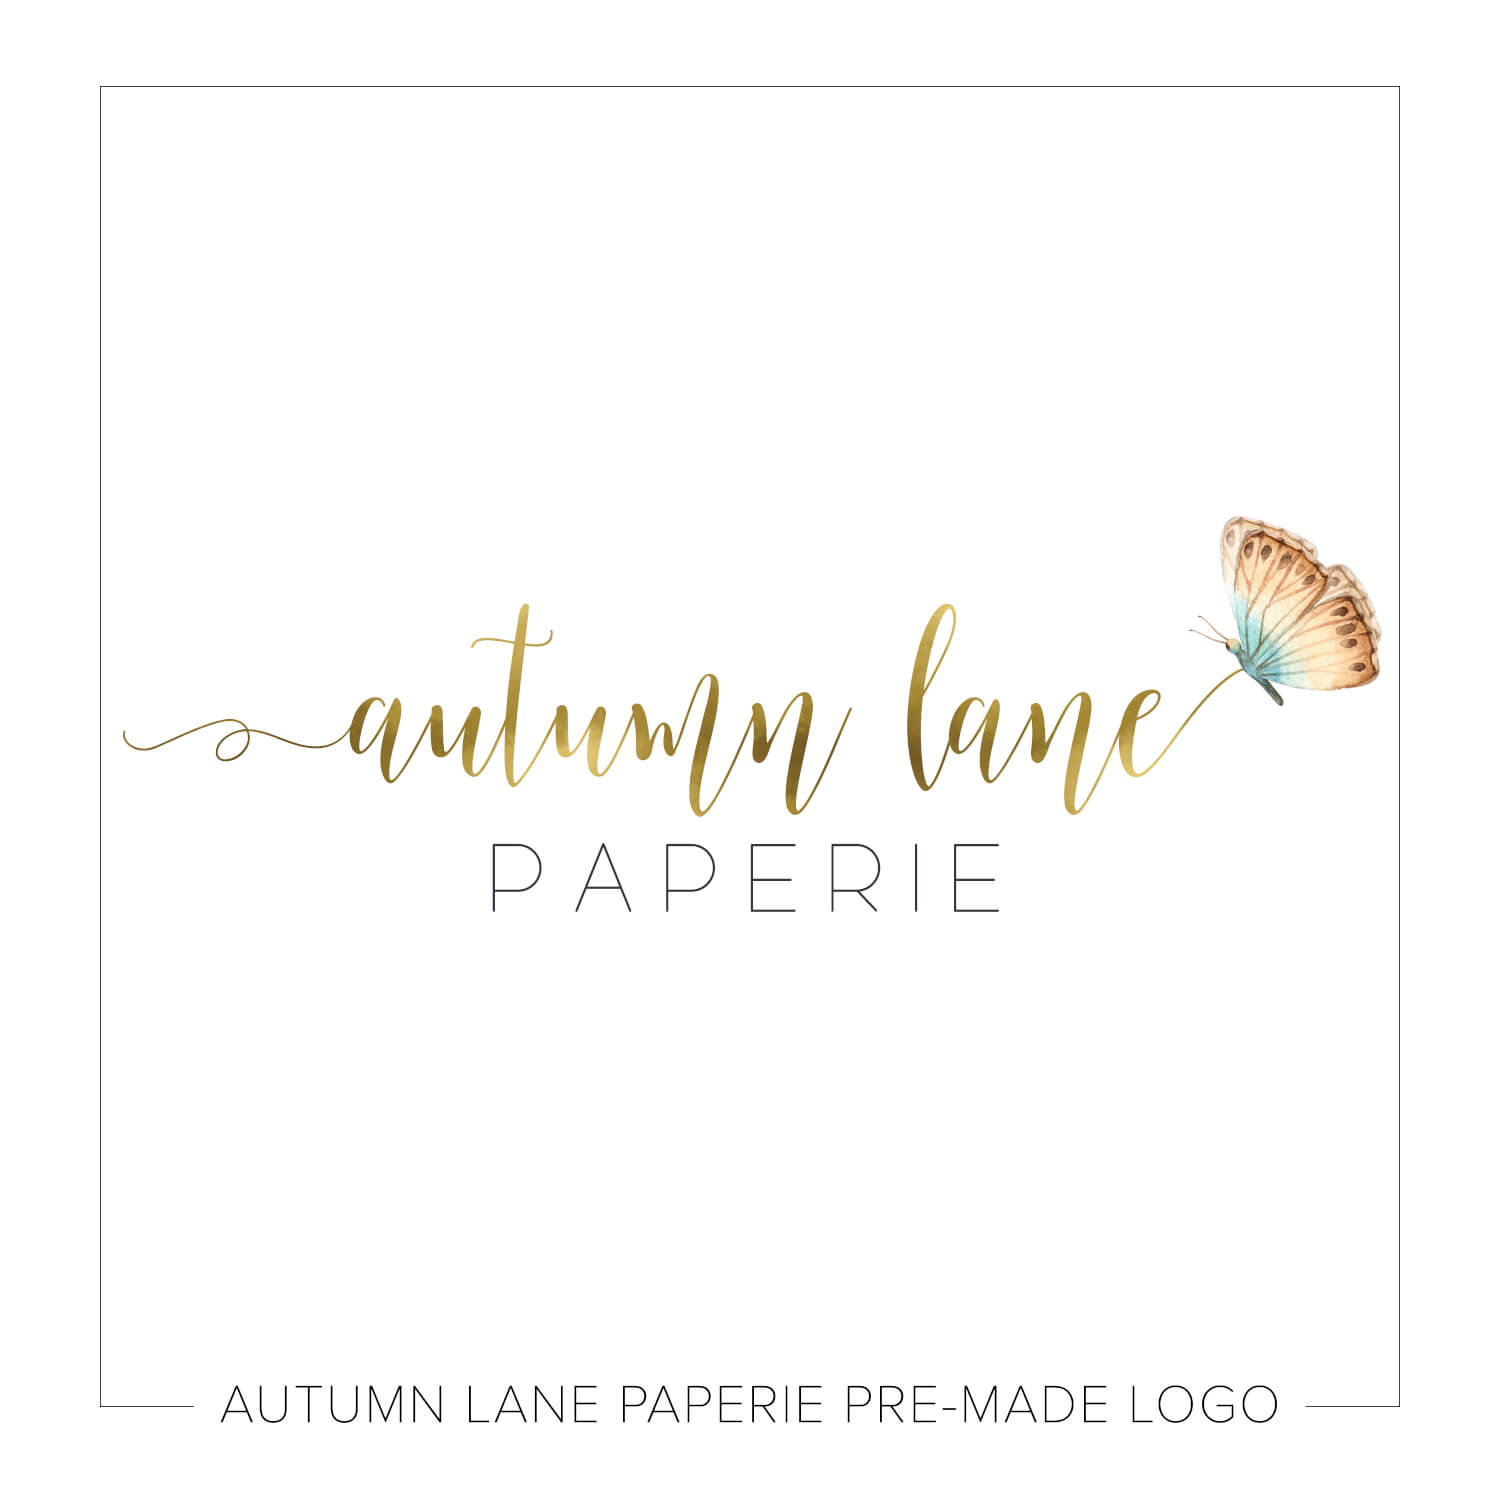 Autumn Lane Paperie Watercolor Logo Design - Beautiful Butterfly Gold Text Logo J87